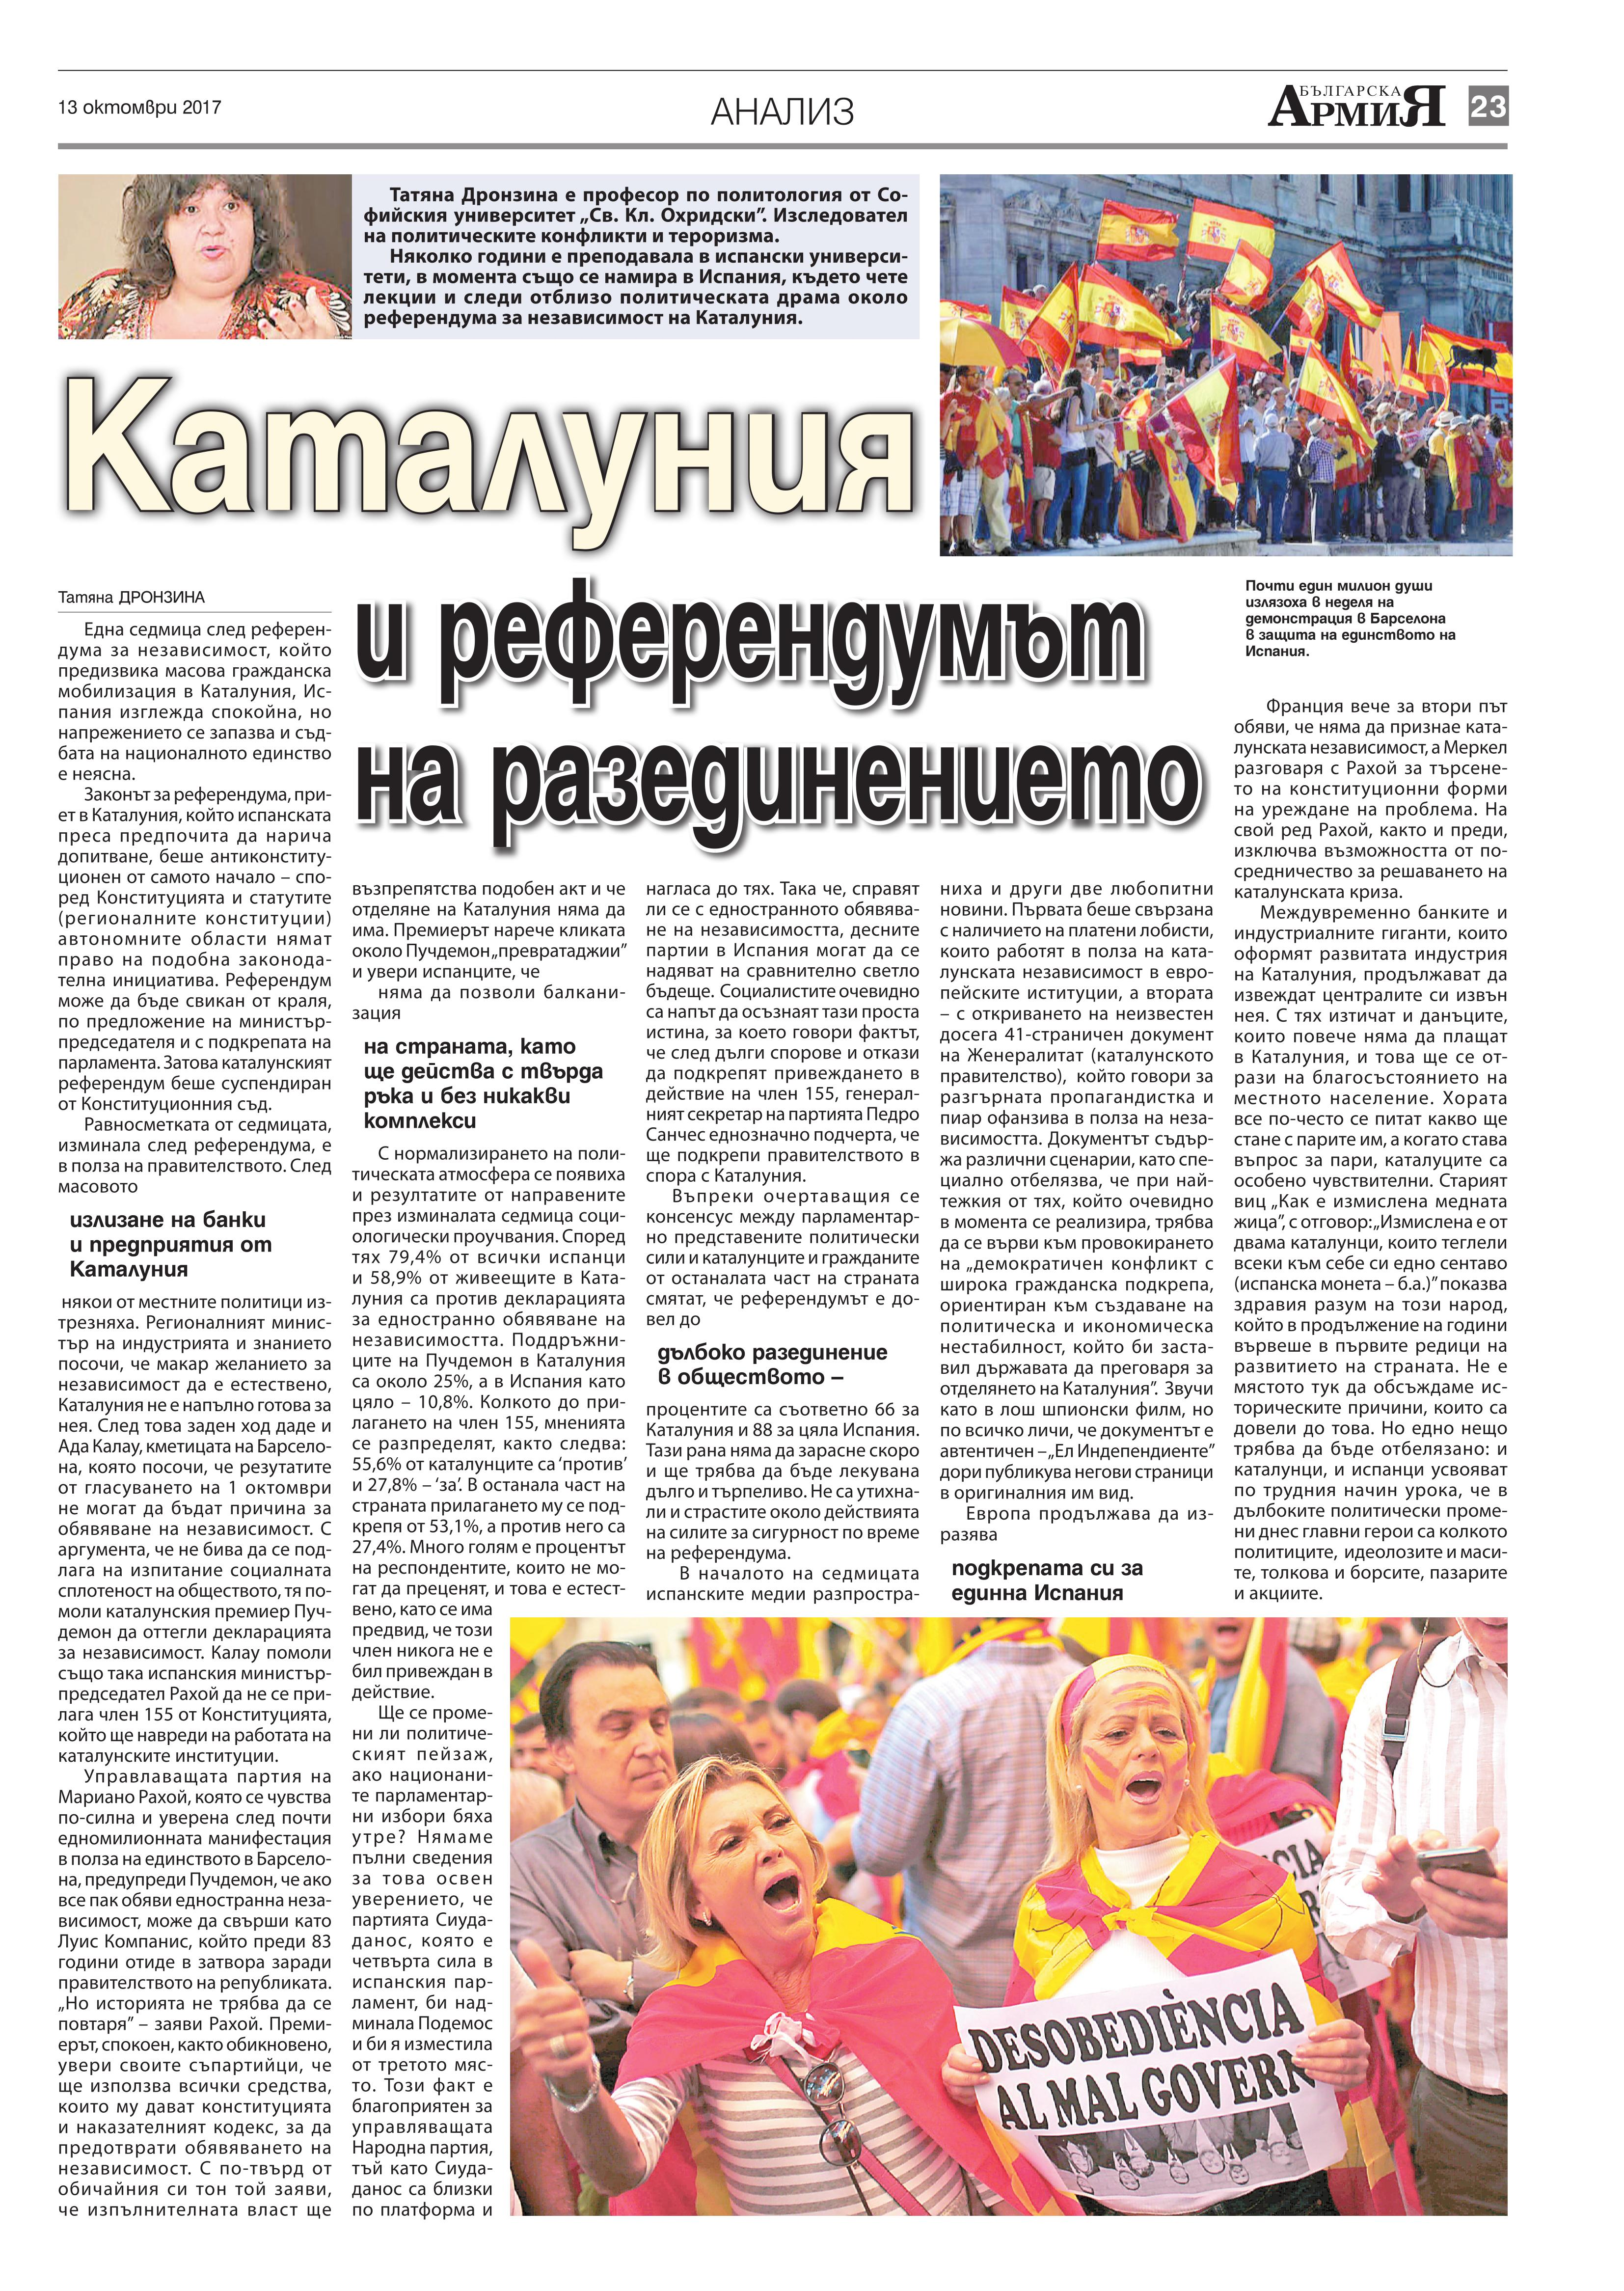 http://armymedia.bg/wp-content/uploads/2015/06/23.page1_-34.jpg